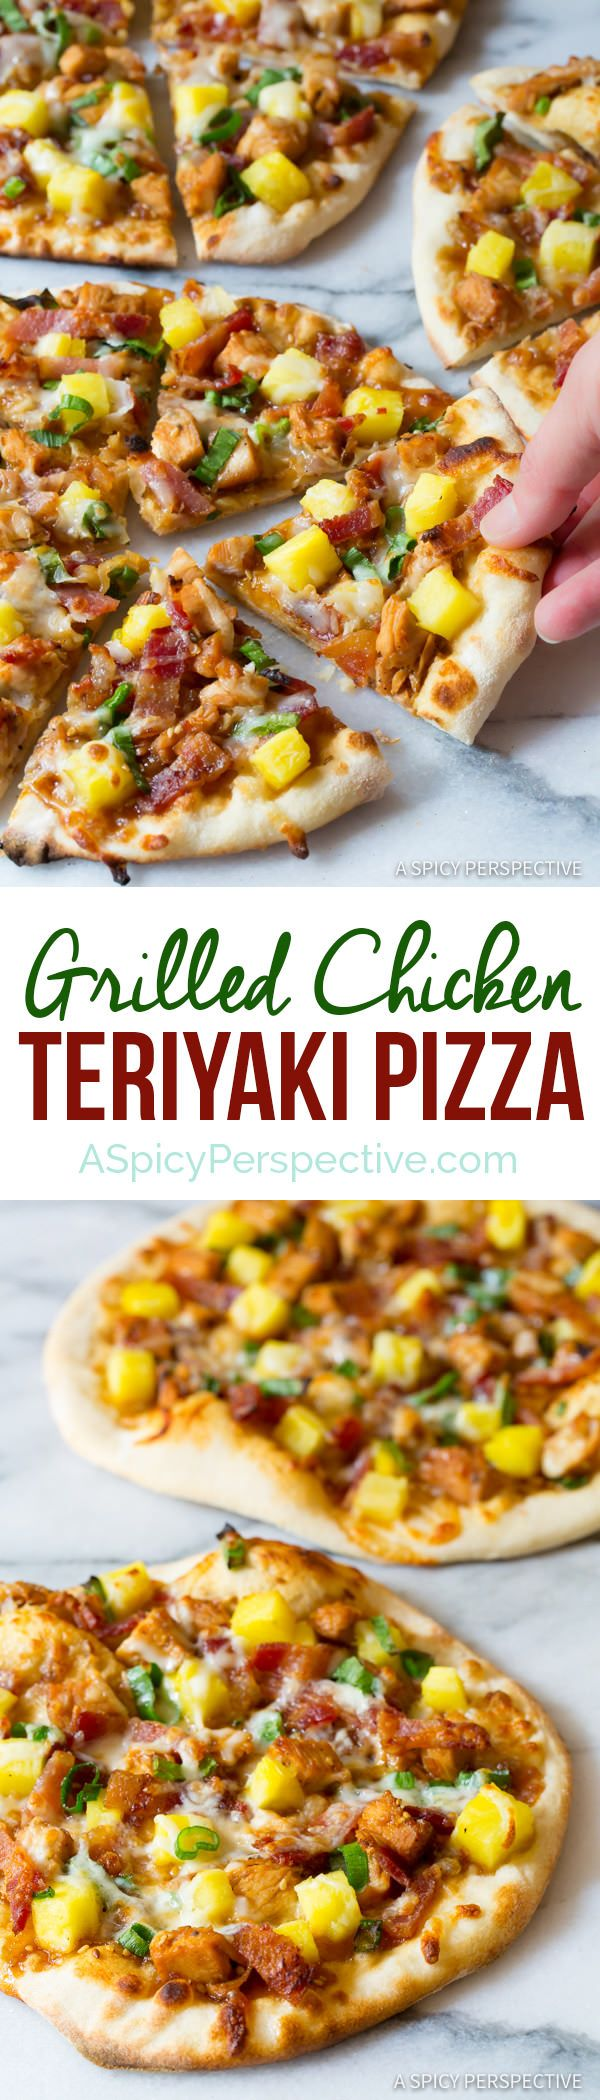 Easy Grilled Chicken Teriyaki Pizza | ASpicyPerspective.com #unlocktheawesome @soyvay